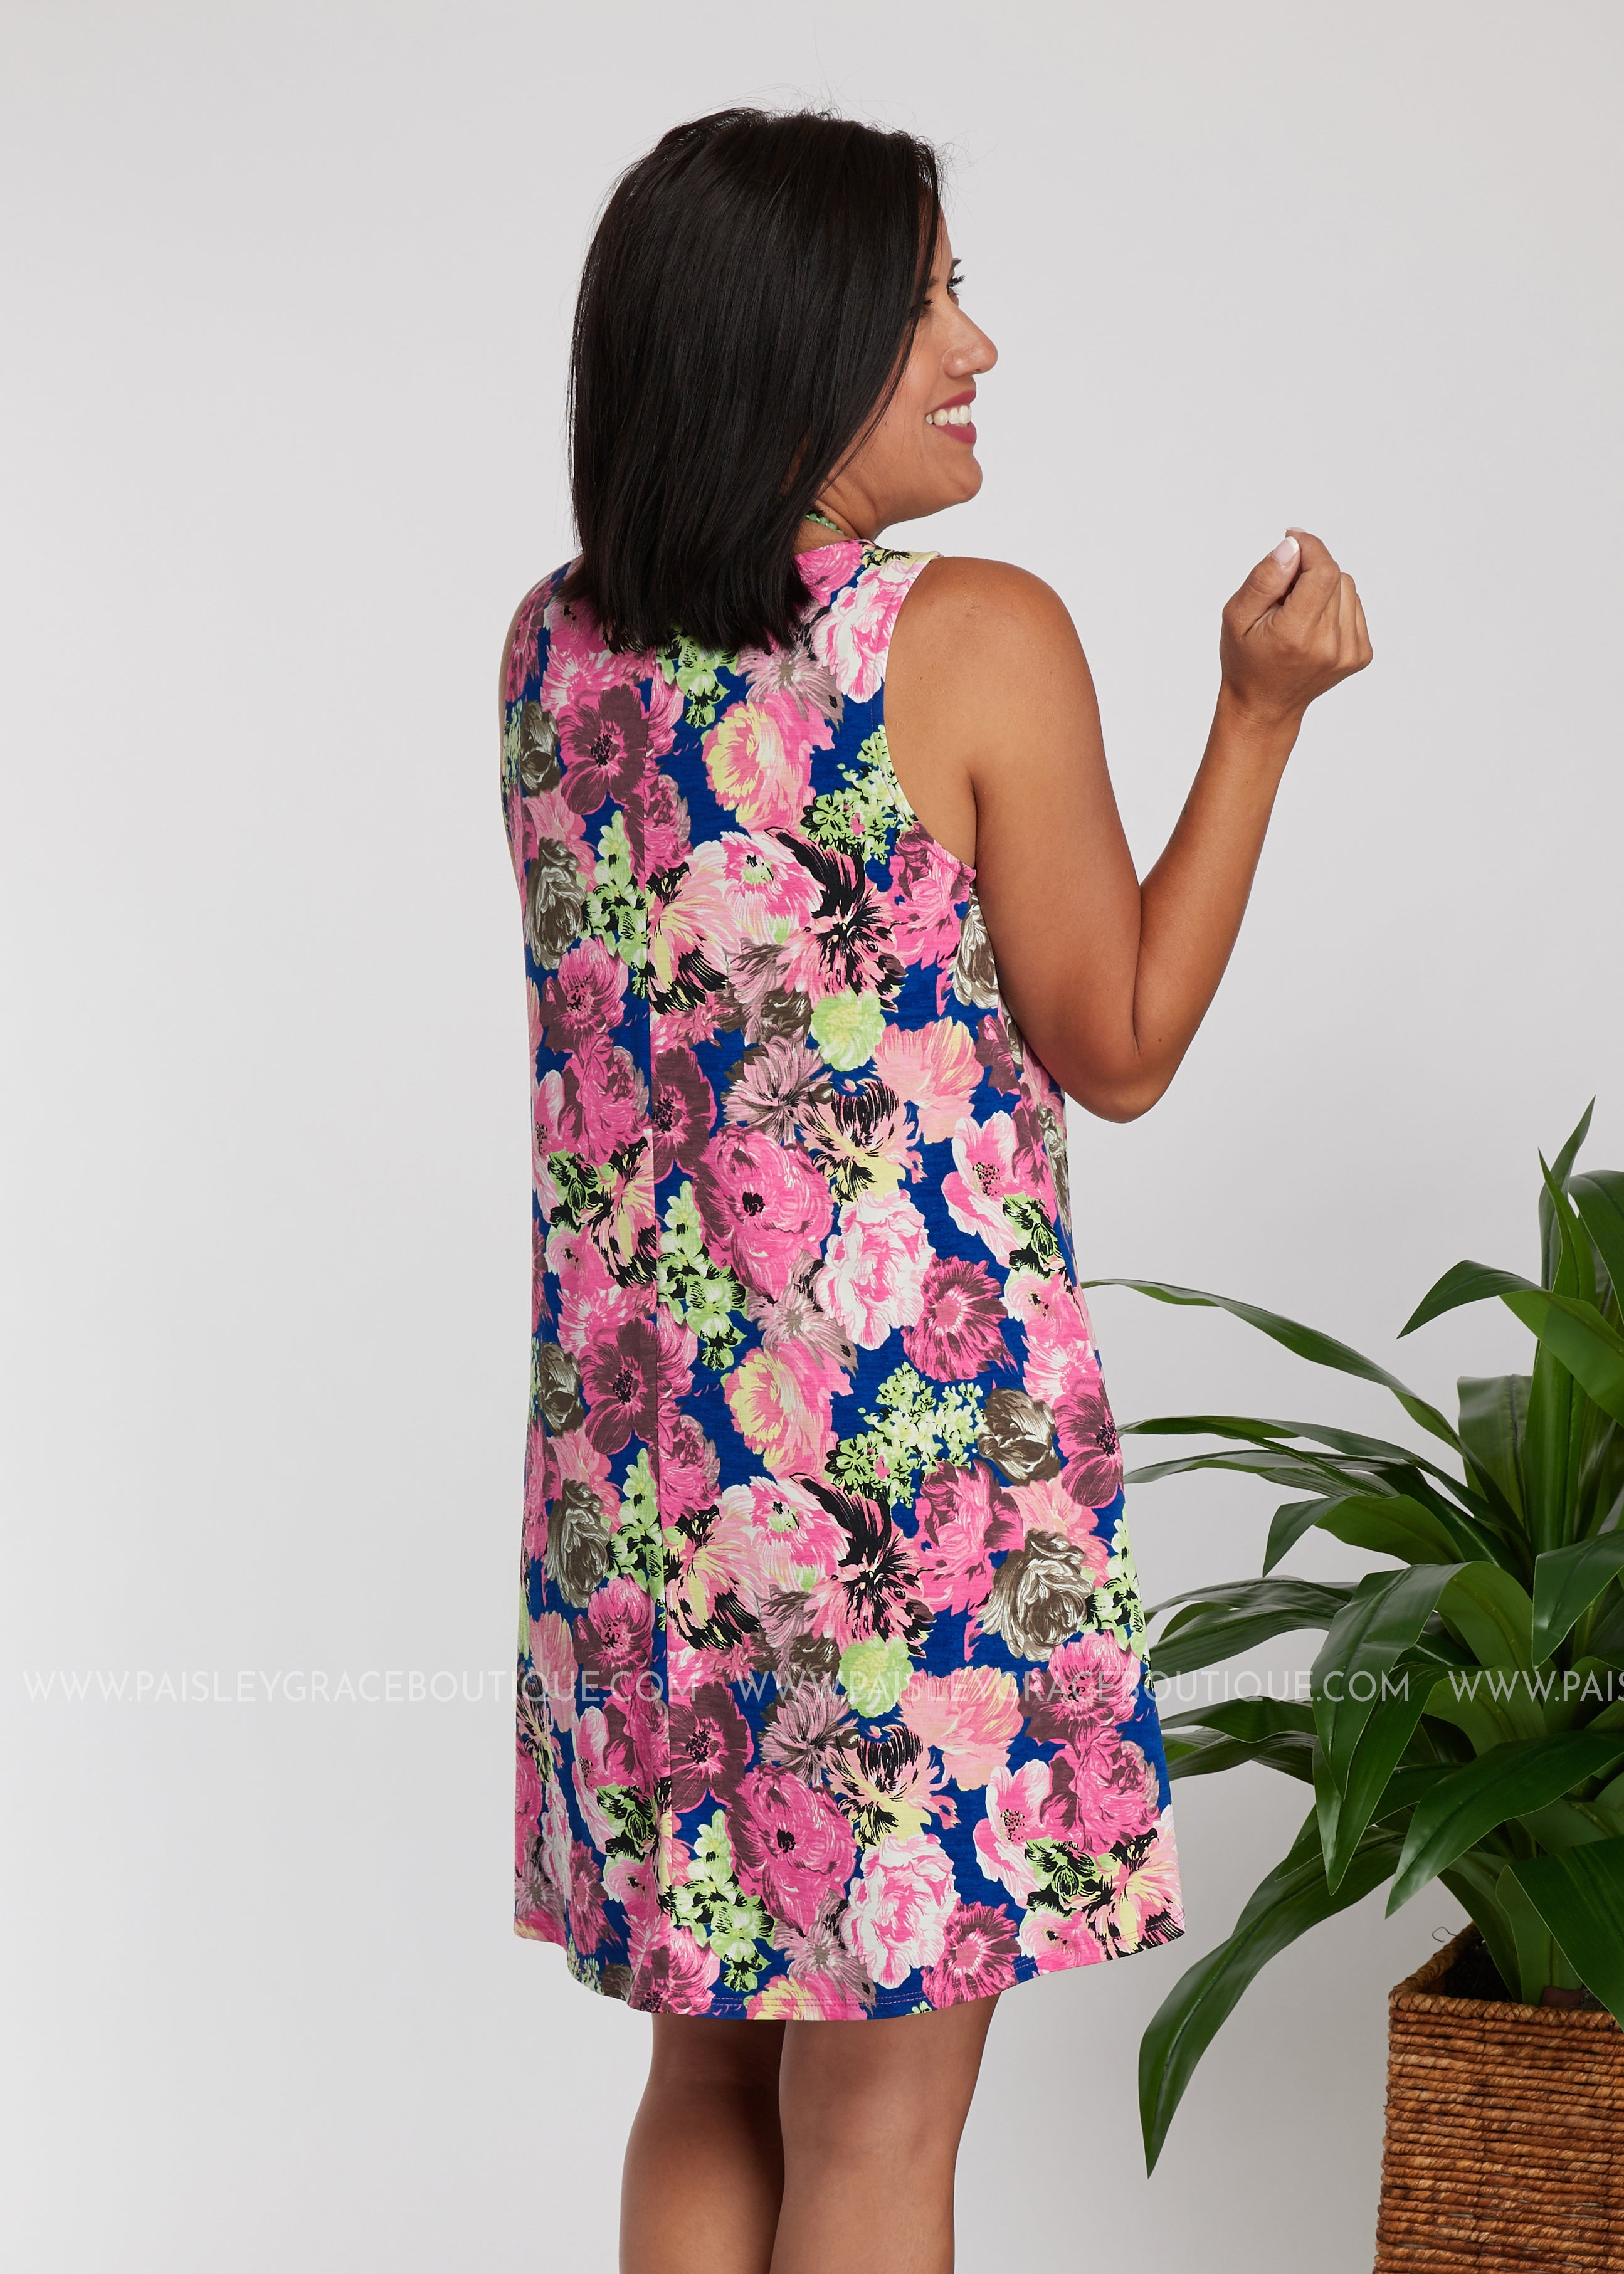 Floral Dreams Dress - PINK - FINAL SALE